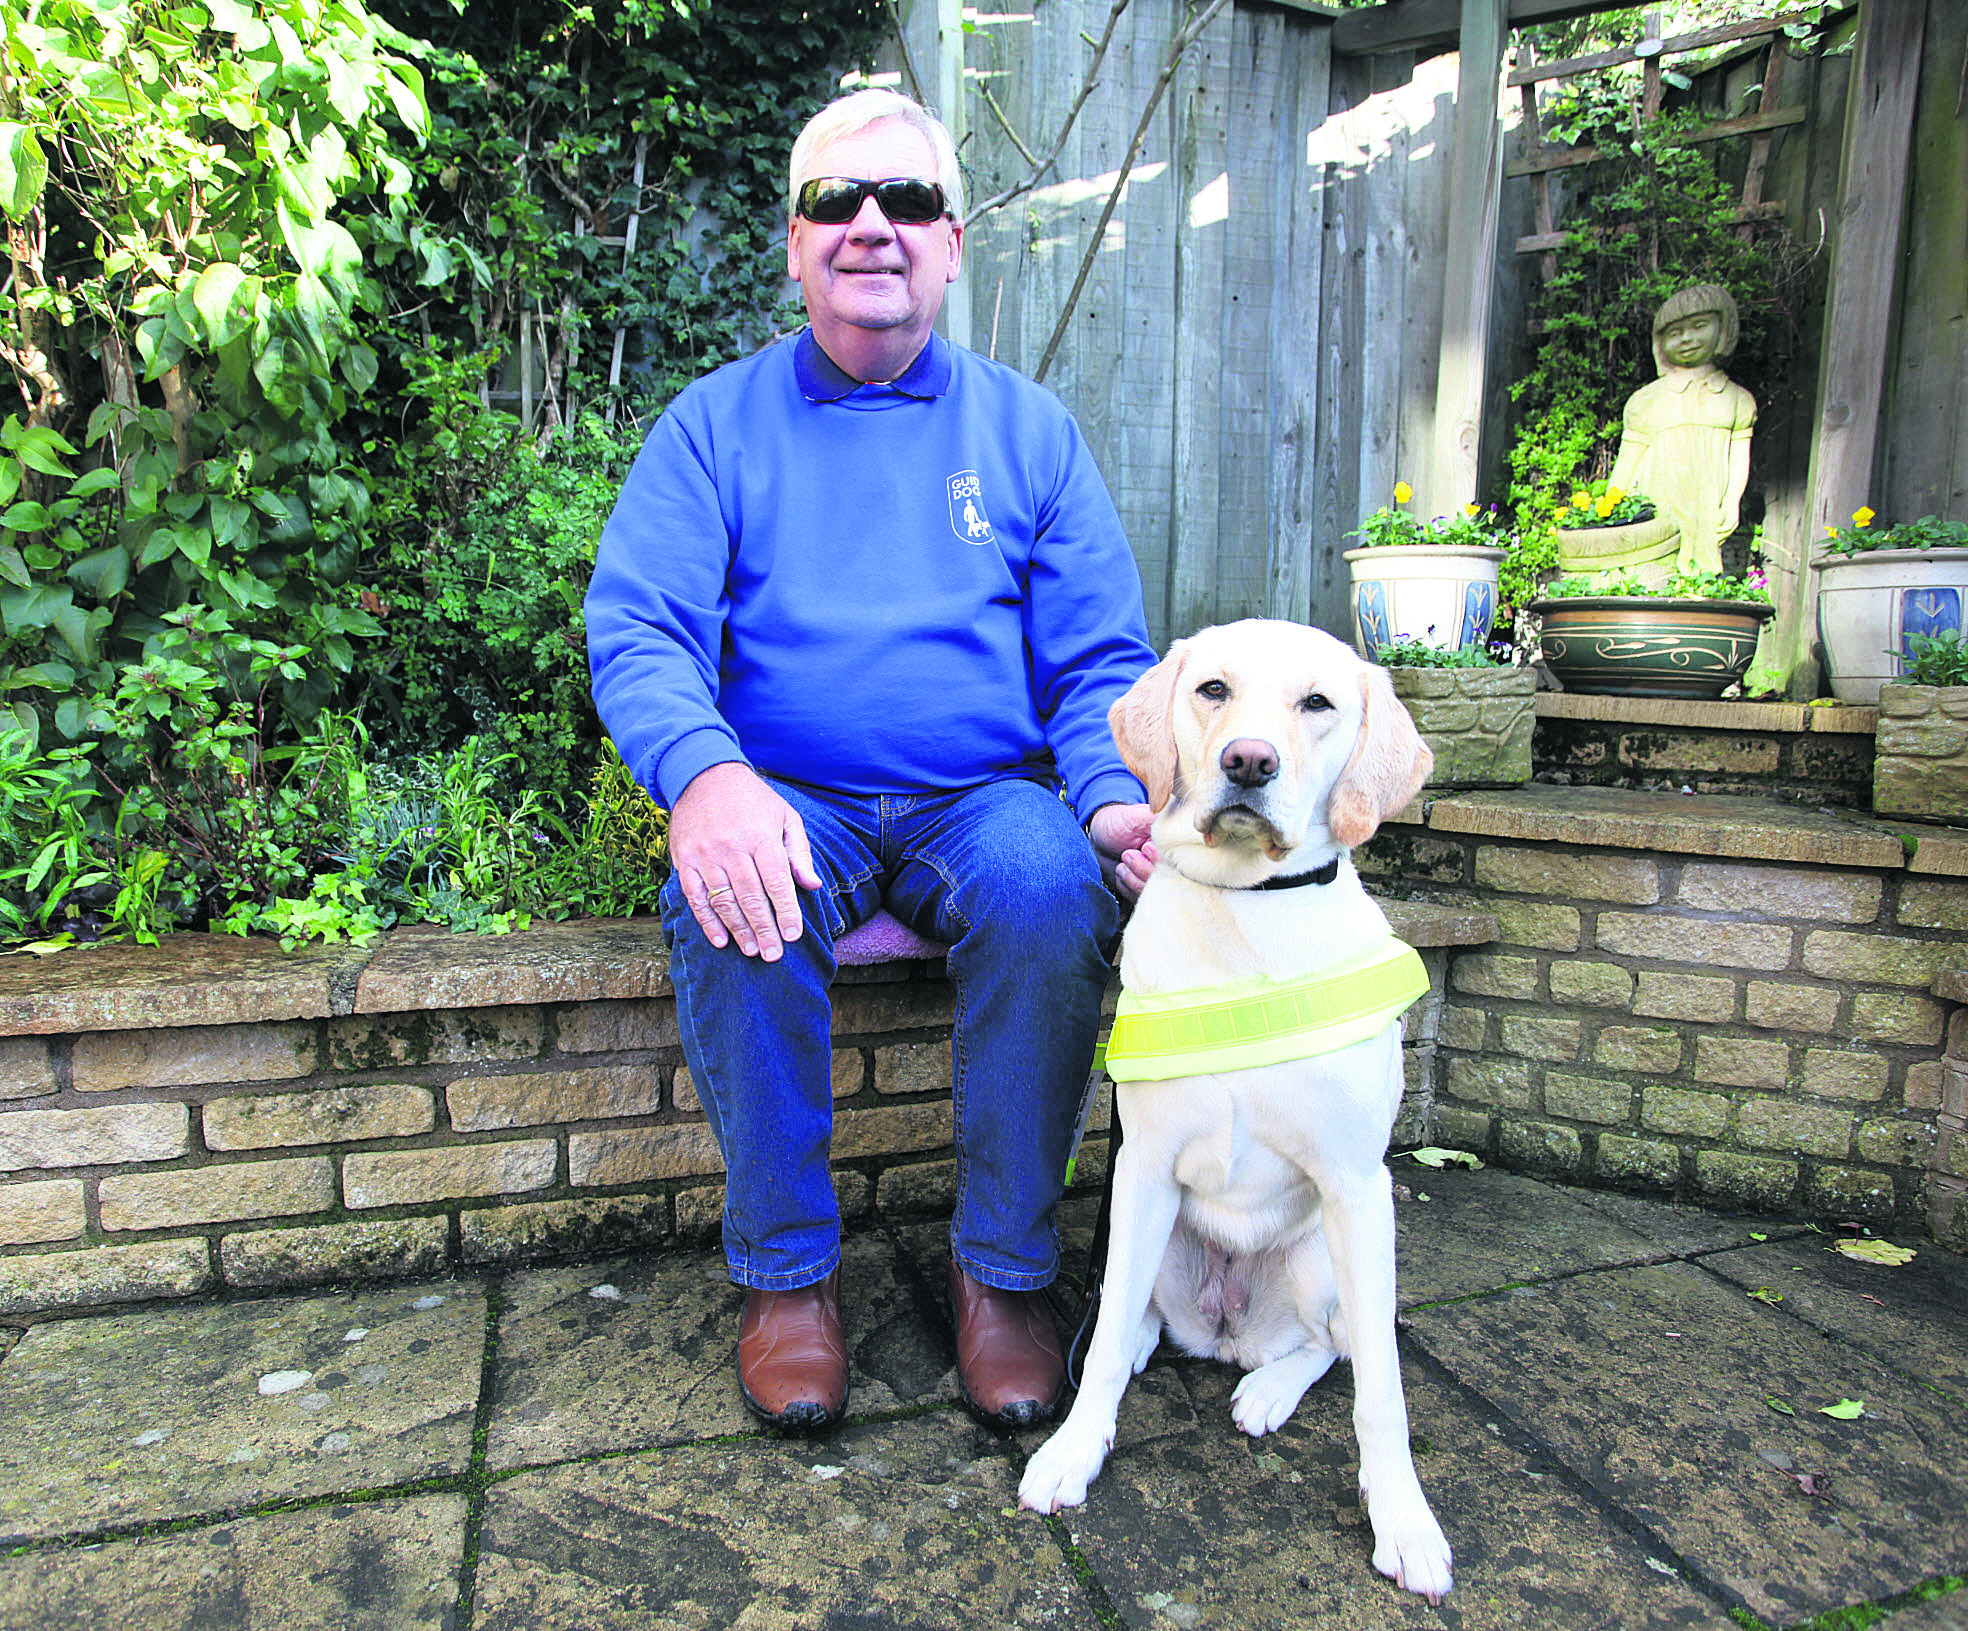 Alan Fletcher with his guide dog Nutmeg